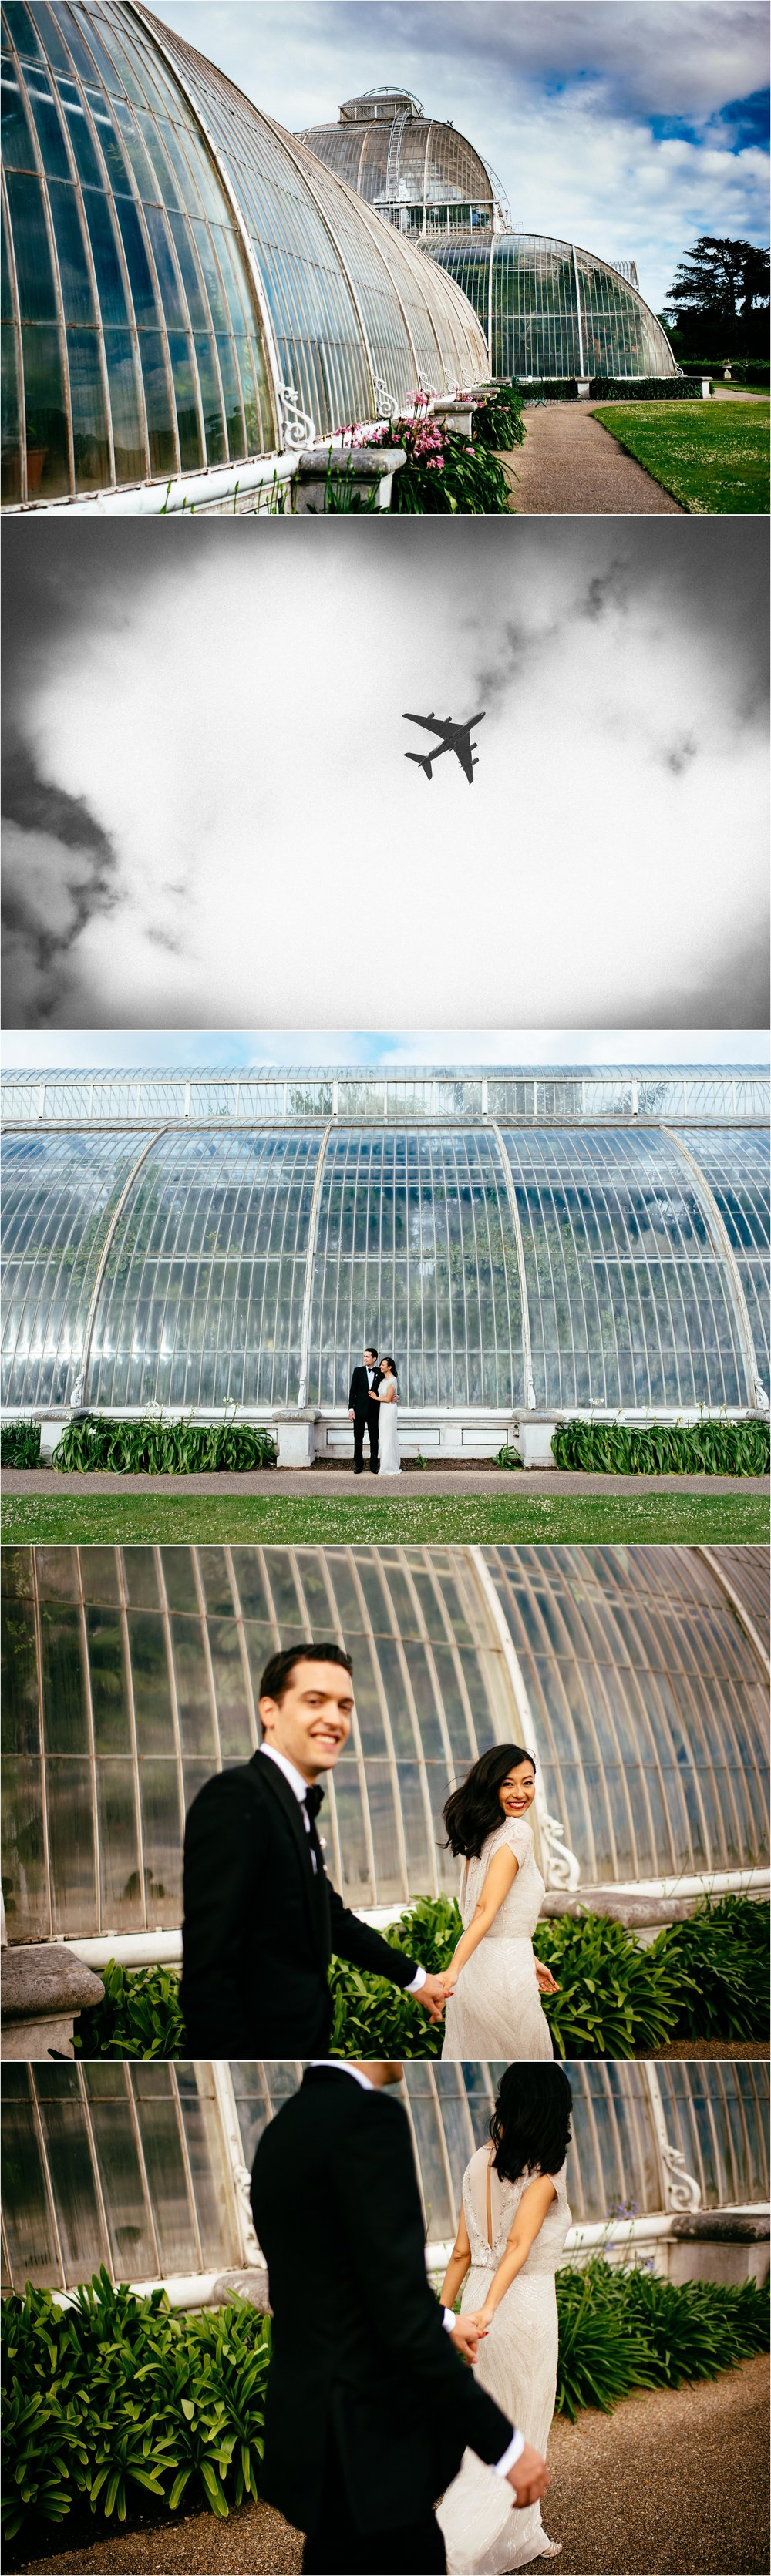 Kew Garden wedding photographer_0194.jpg